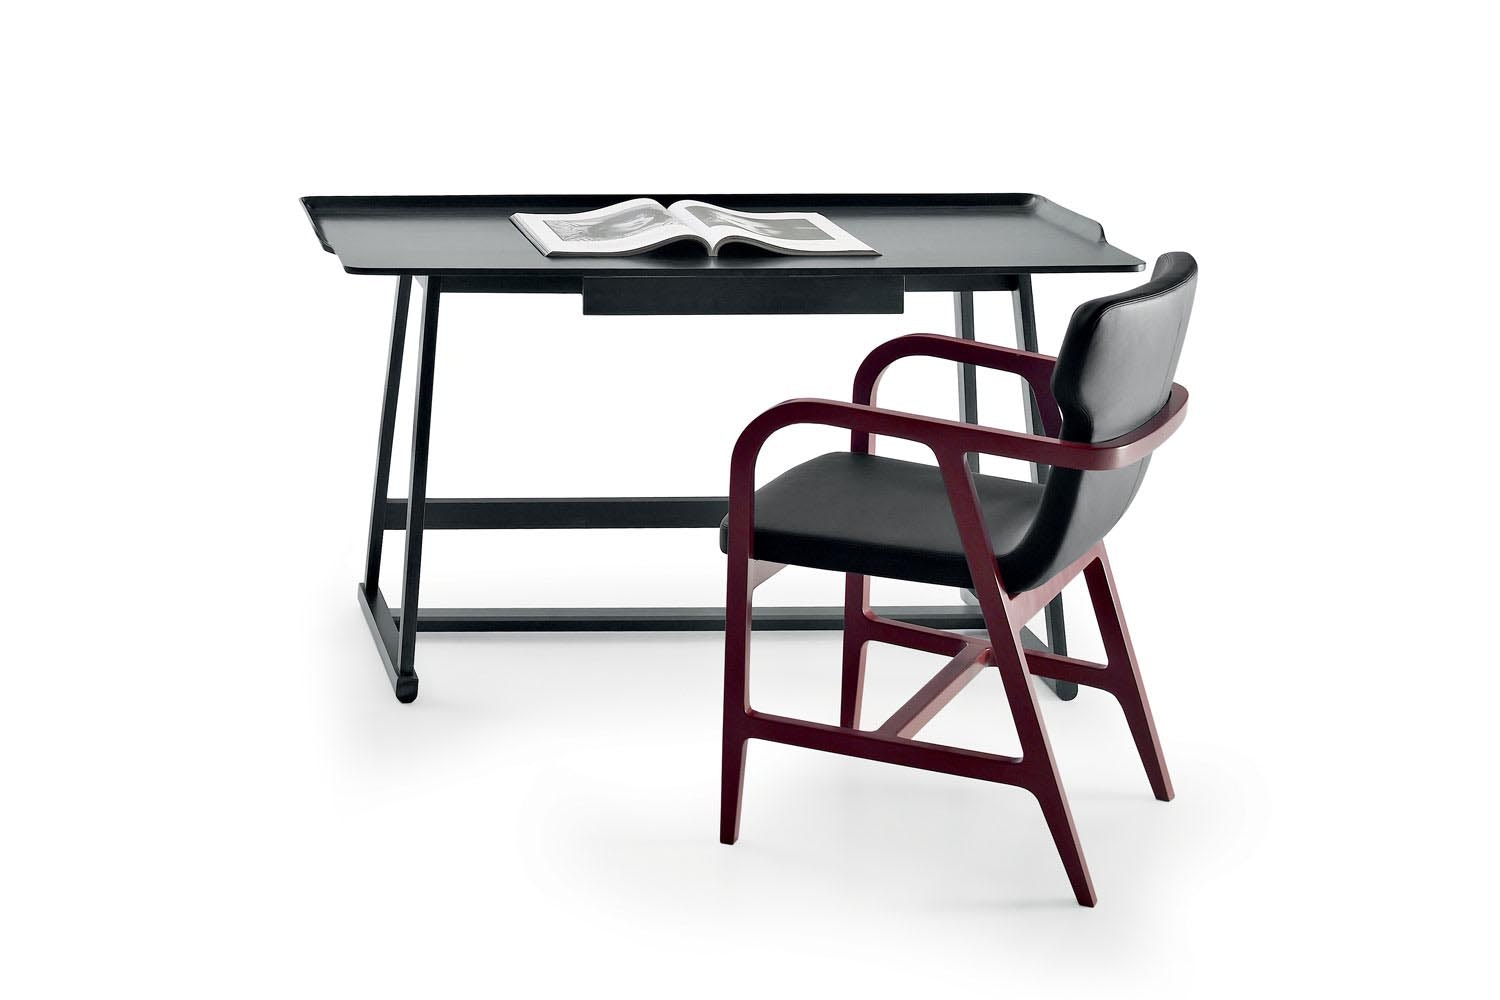 Recipio '14 Writing Desk by Antonio Citterio for Maxalto